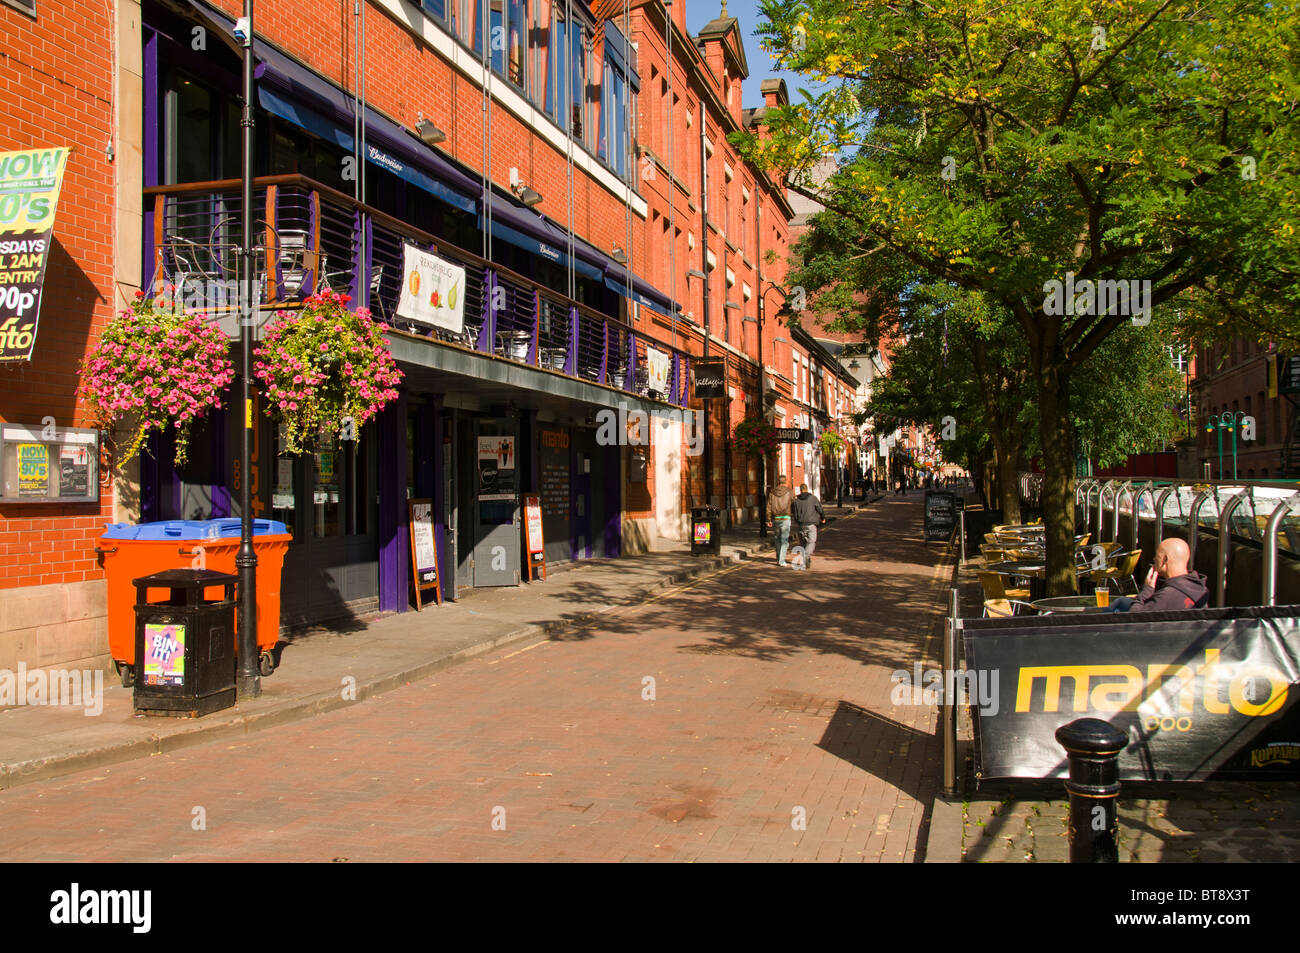 Canal Street, near Manchester city centre.  Manchester, England, UK. - Stock Image